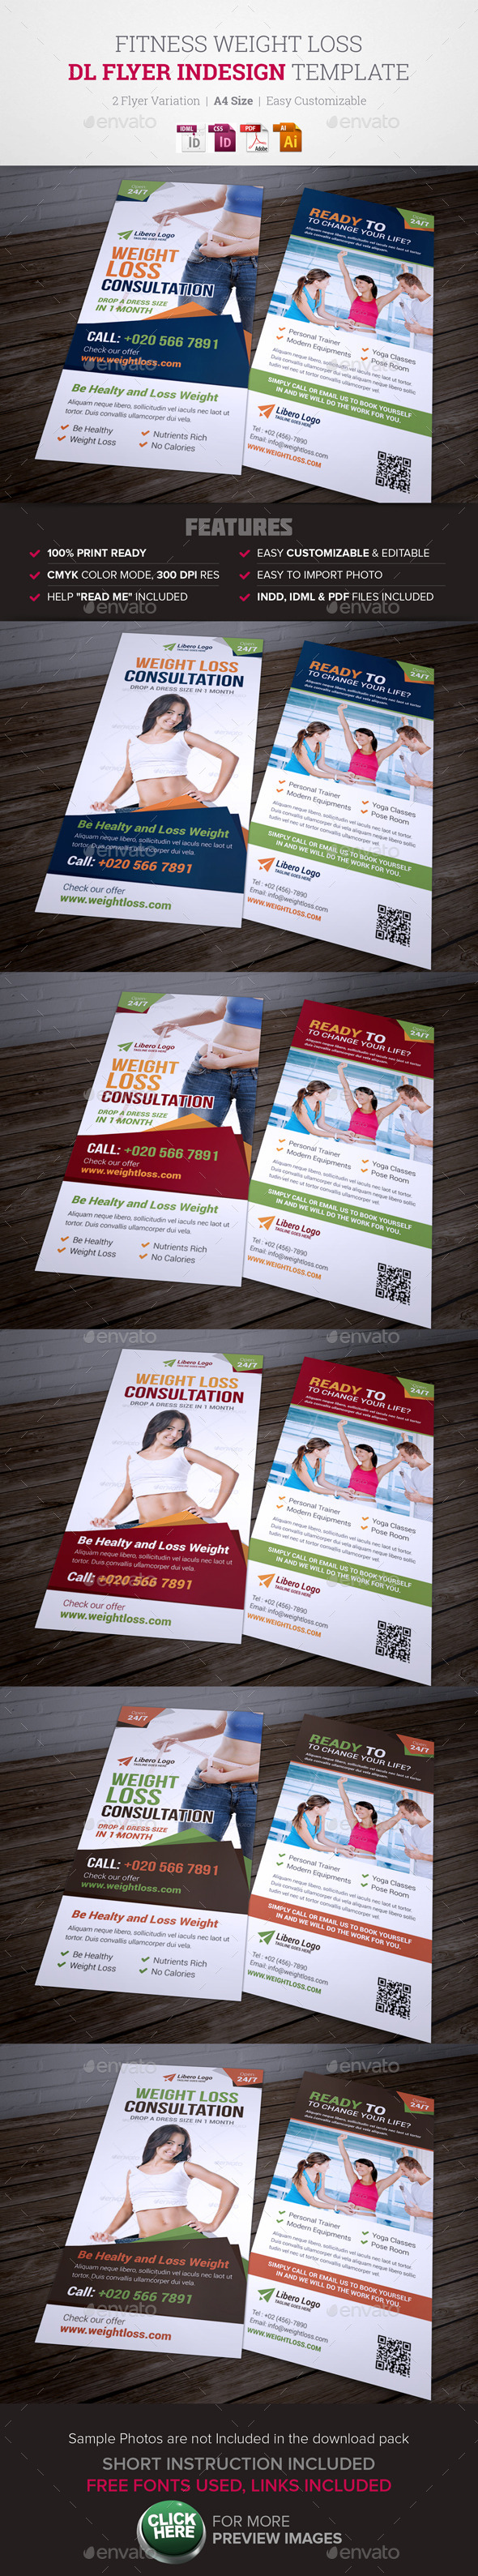 Fitness Weight Loss DL Flyer InDesign Template